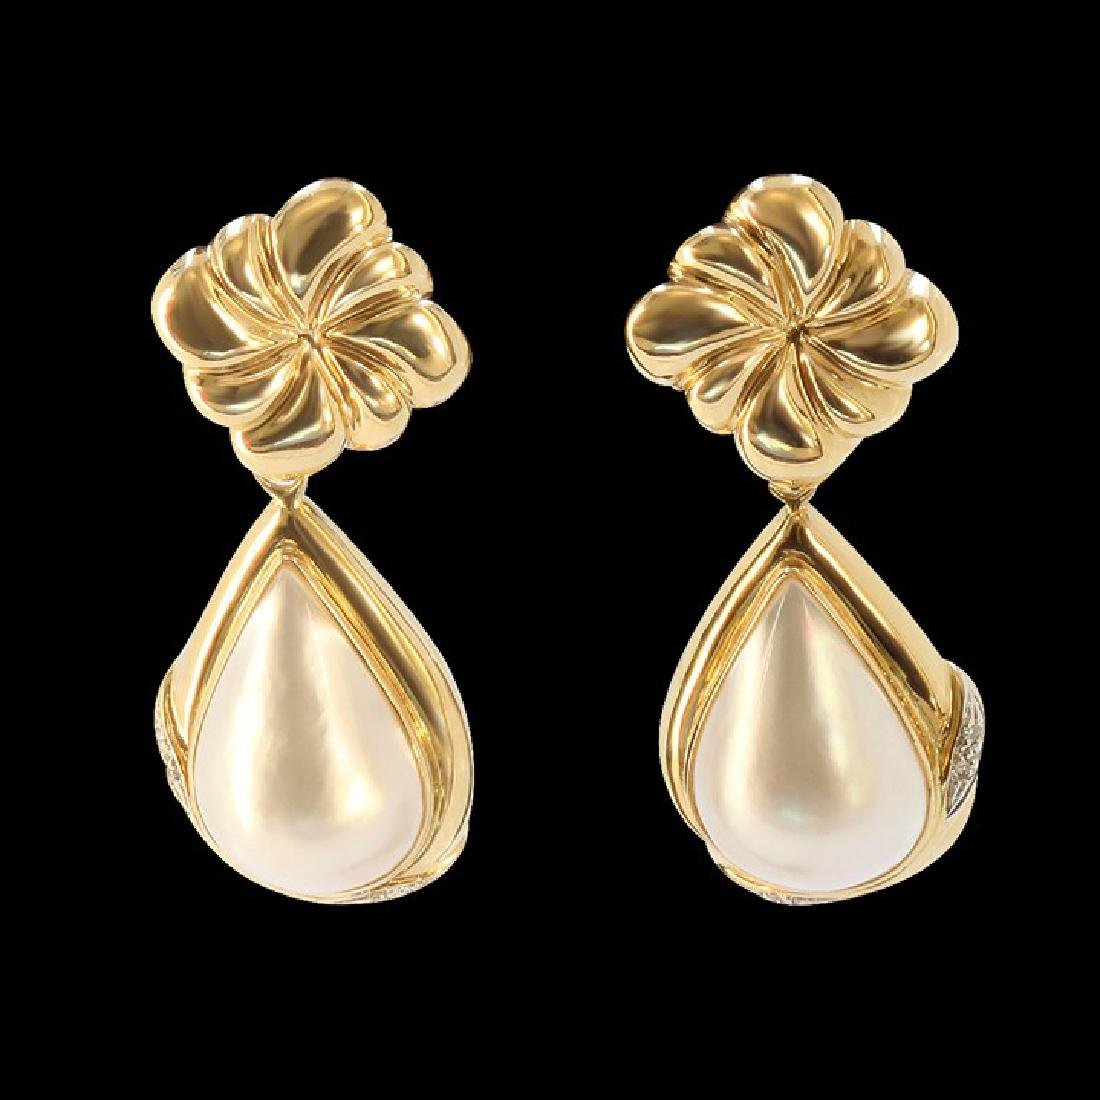 13MM NATURAL PEARL 14K YELLOW GOLD EARRING - 2